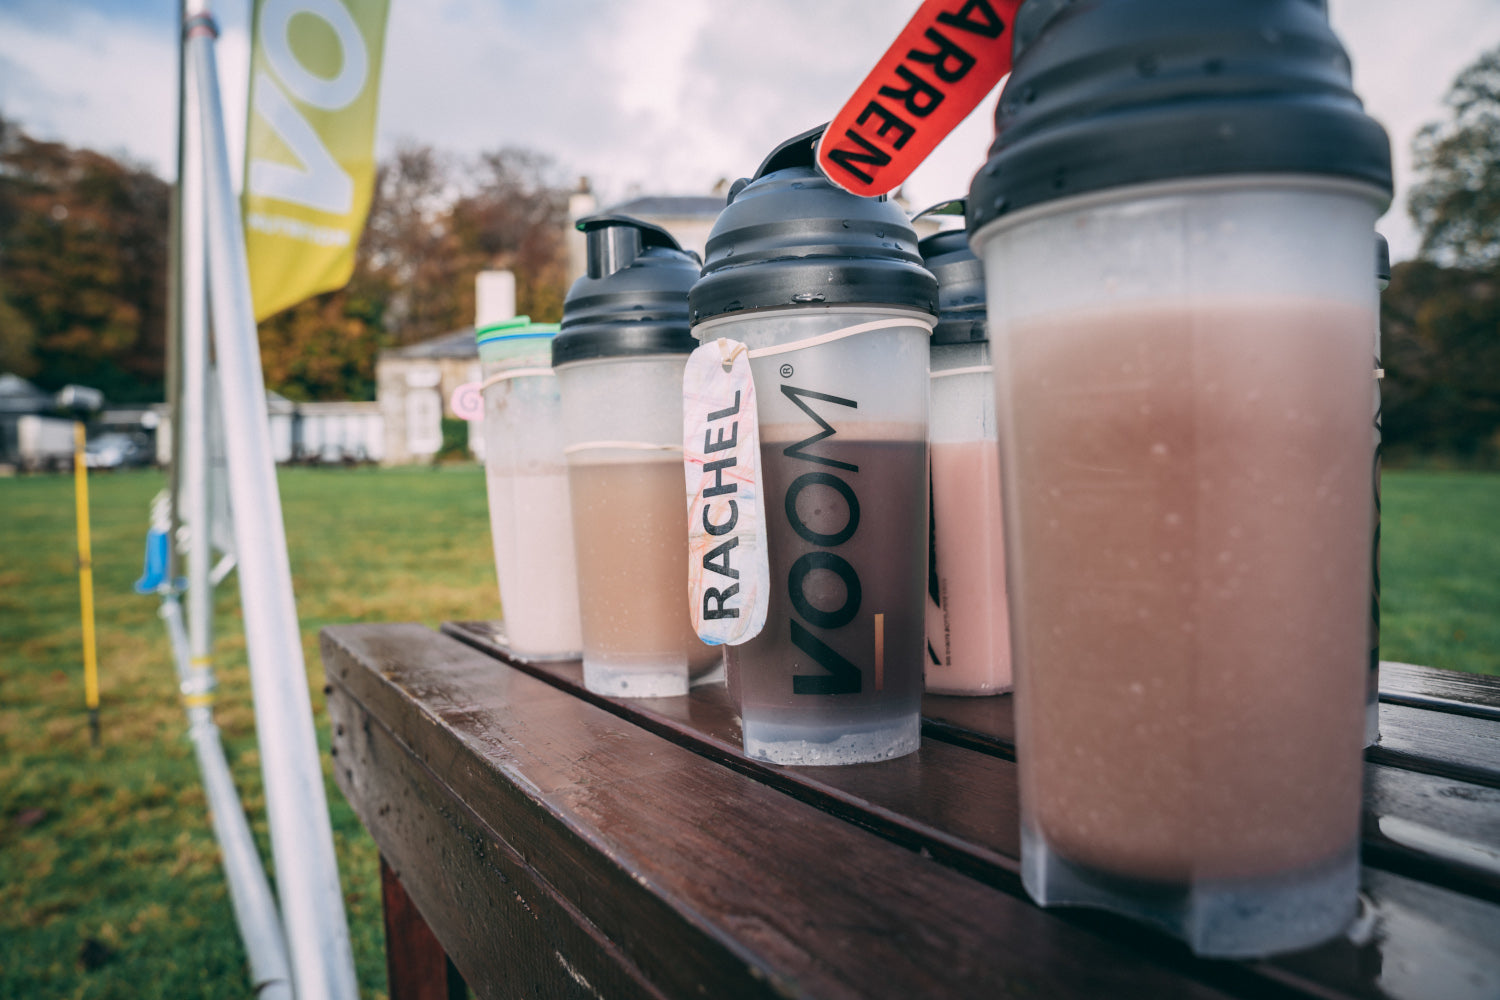 VOOM Rapid recovery shakes lined up on a table to help athletes recover and refuel after marathon running